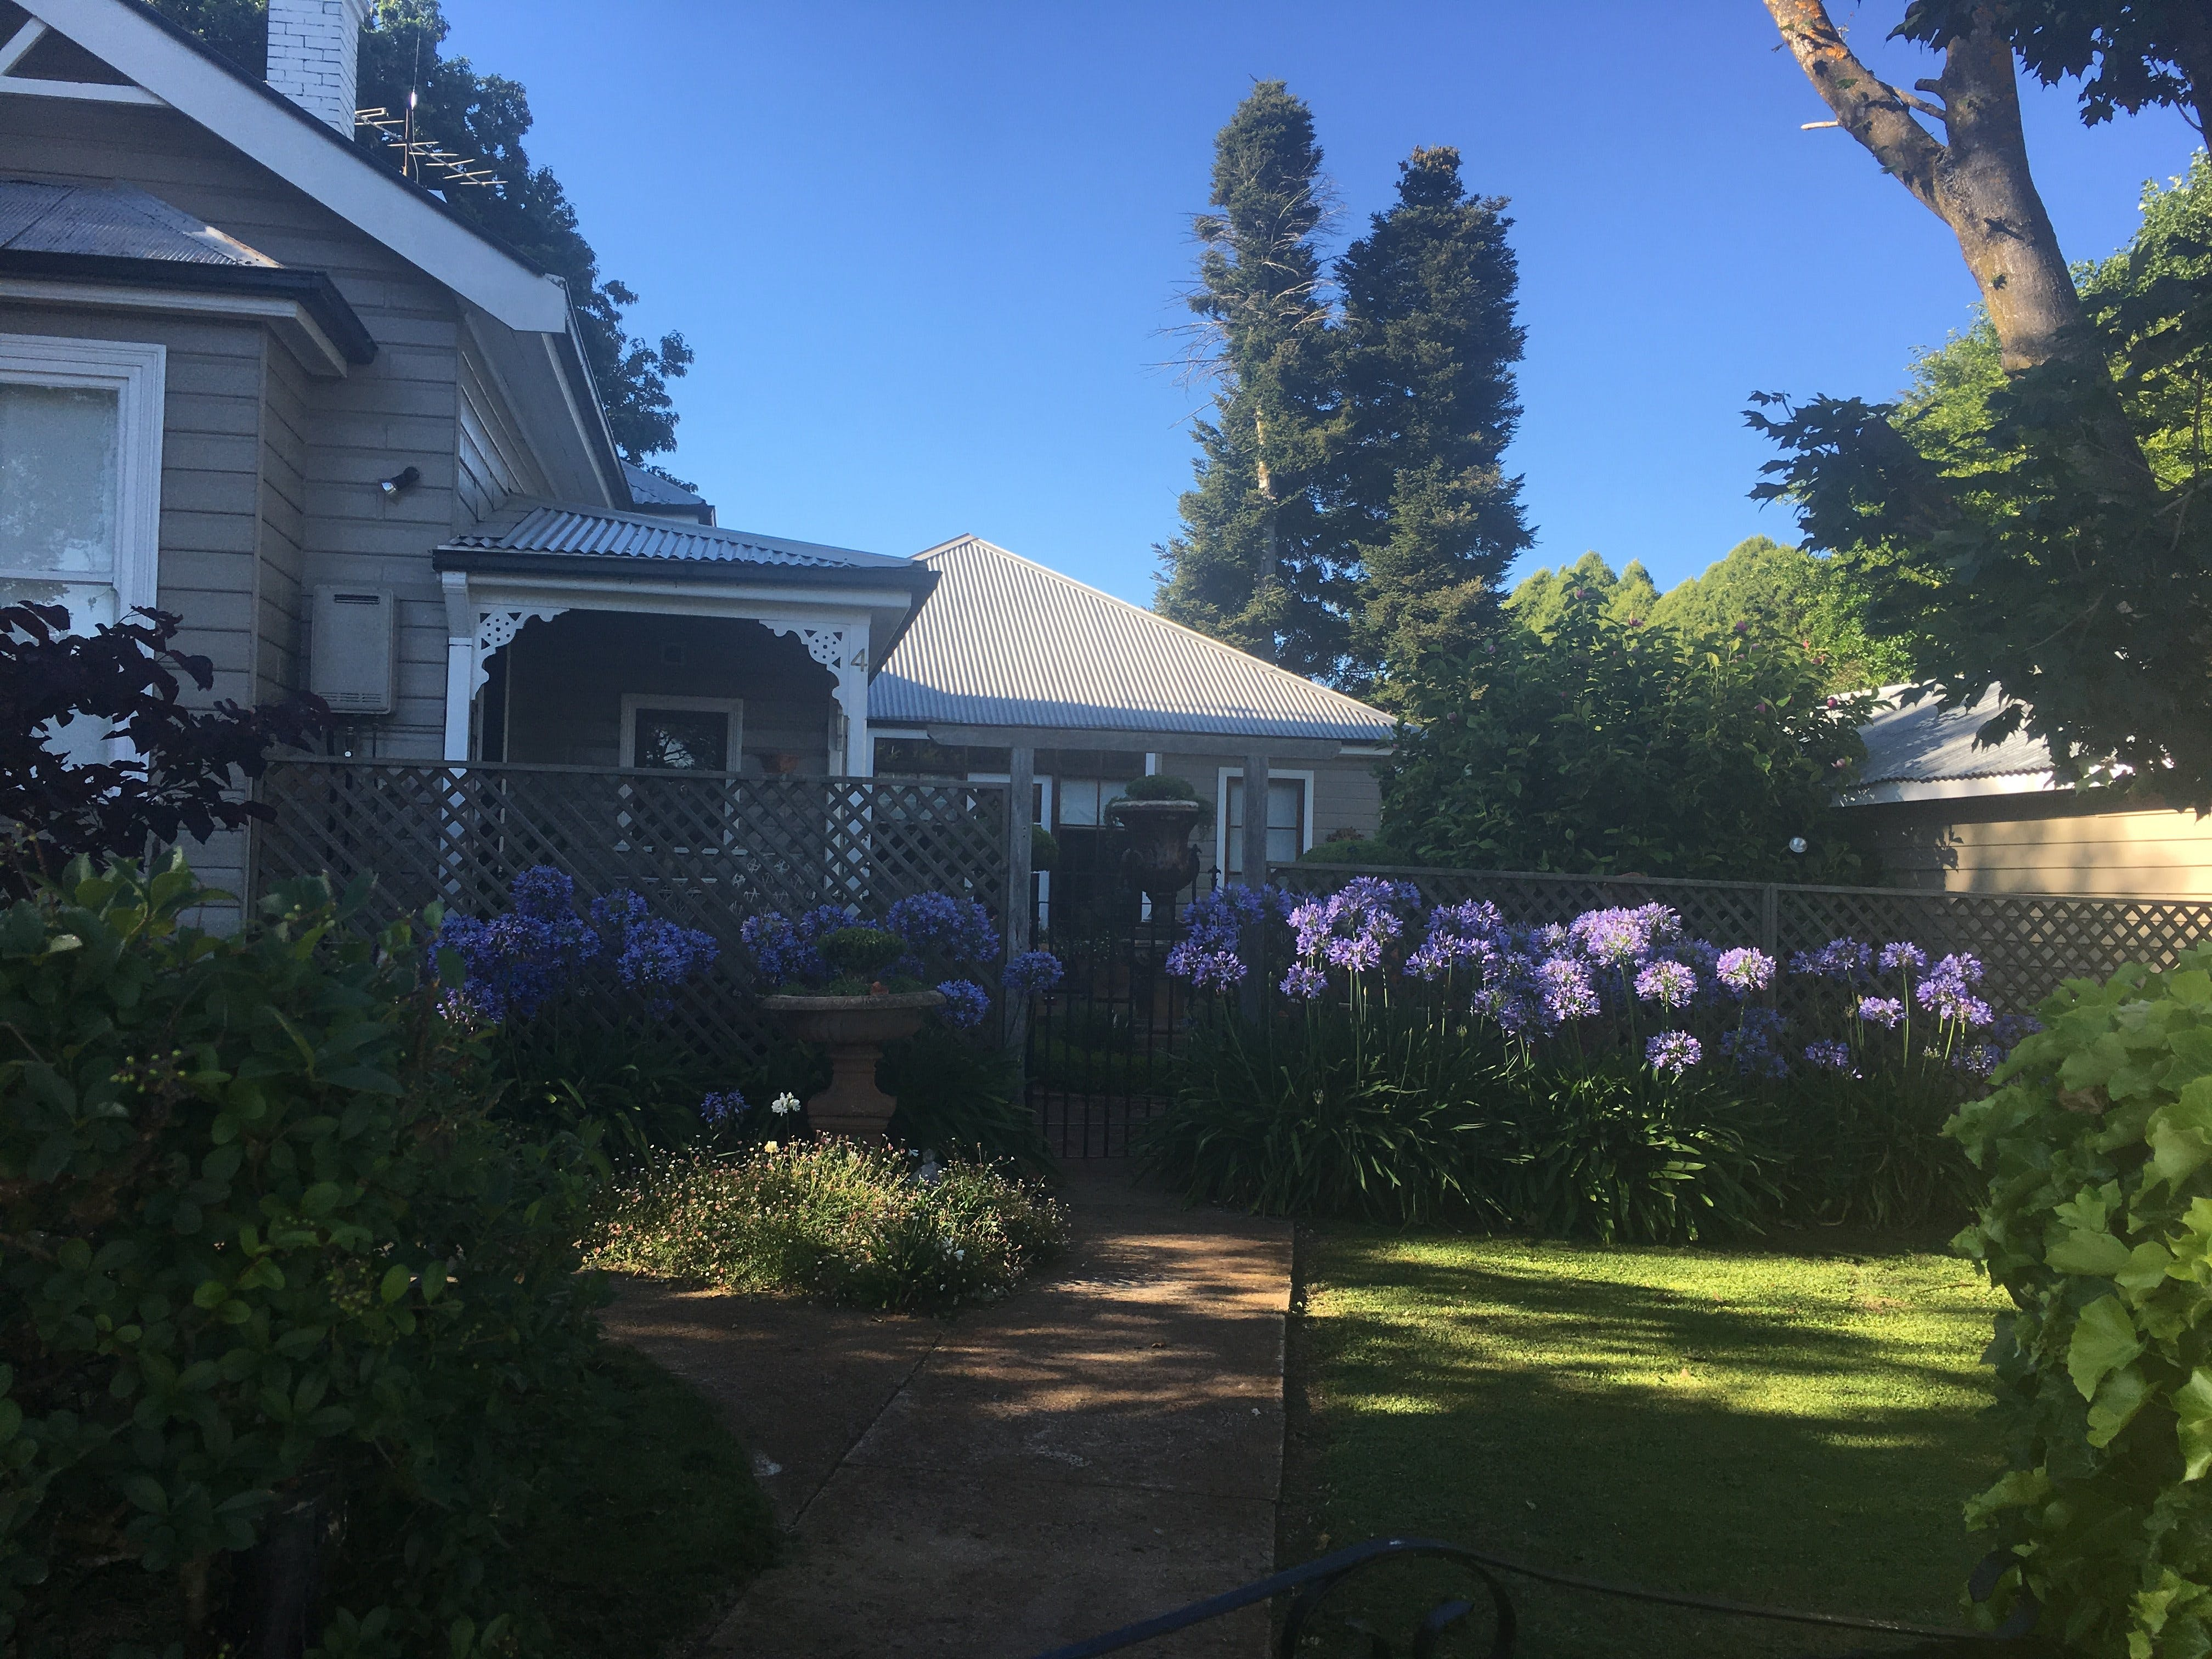 The Old Manse Bed and Breakfast - SA Accommodation